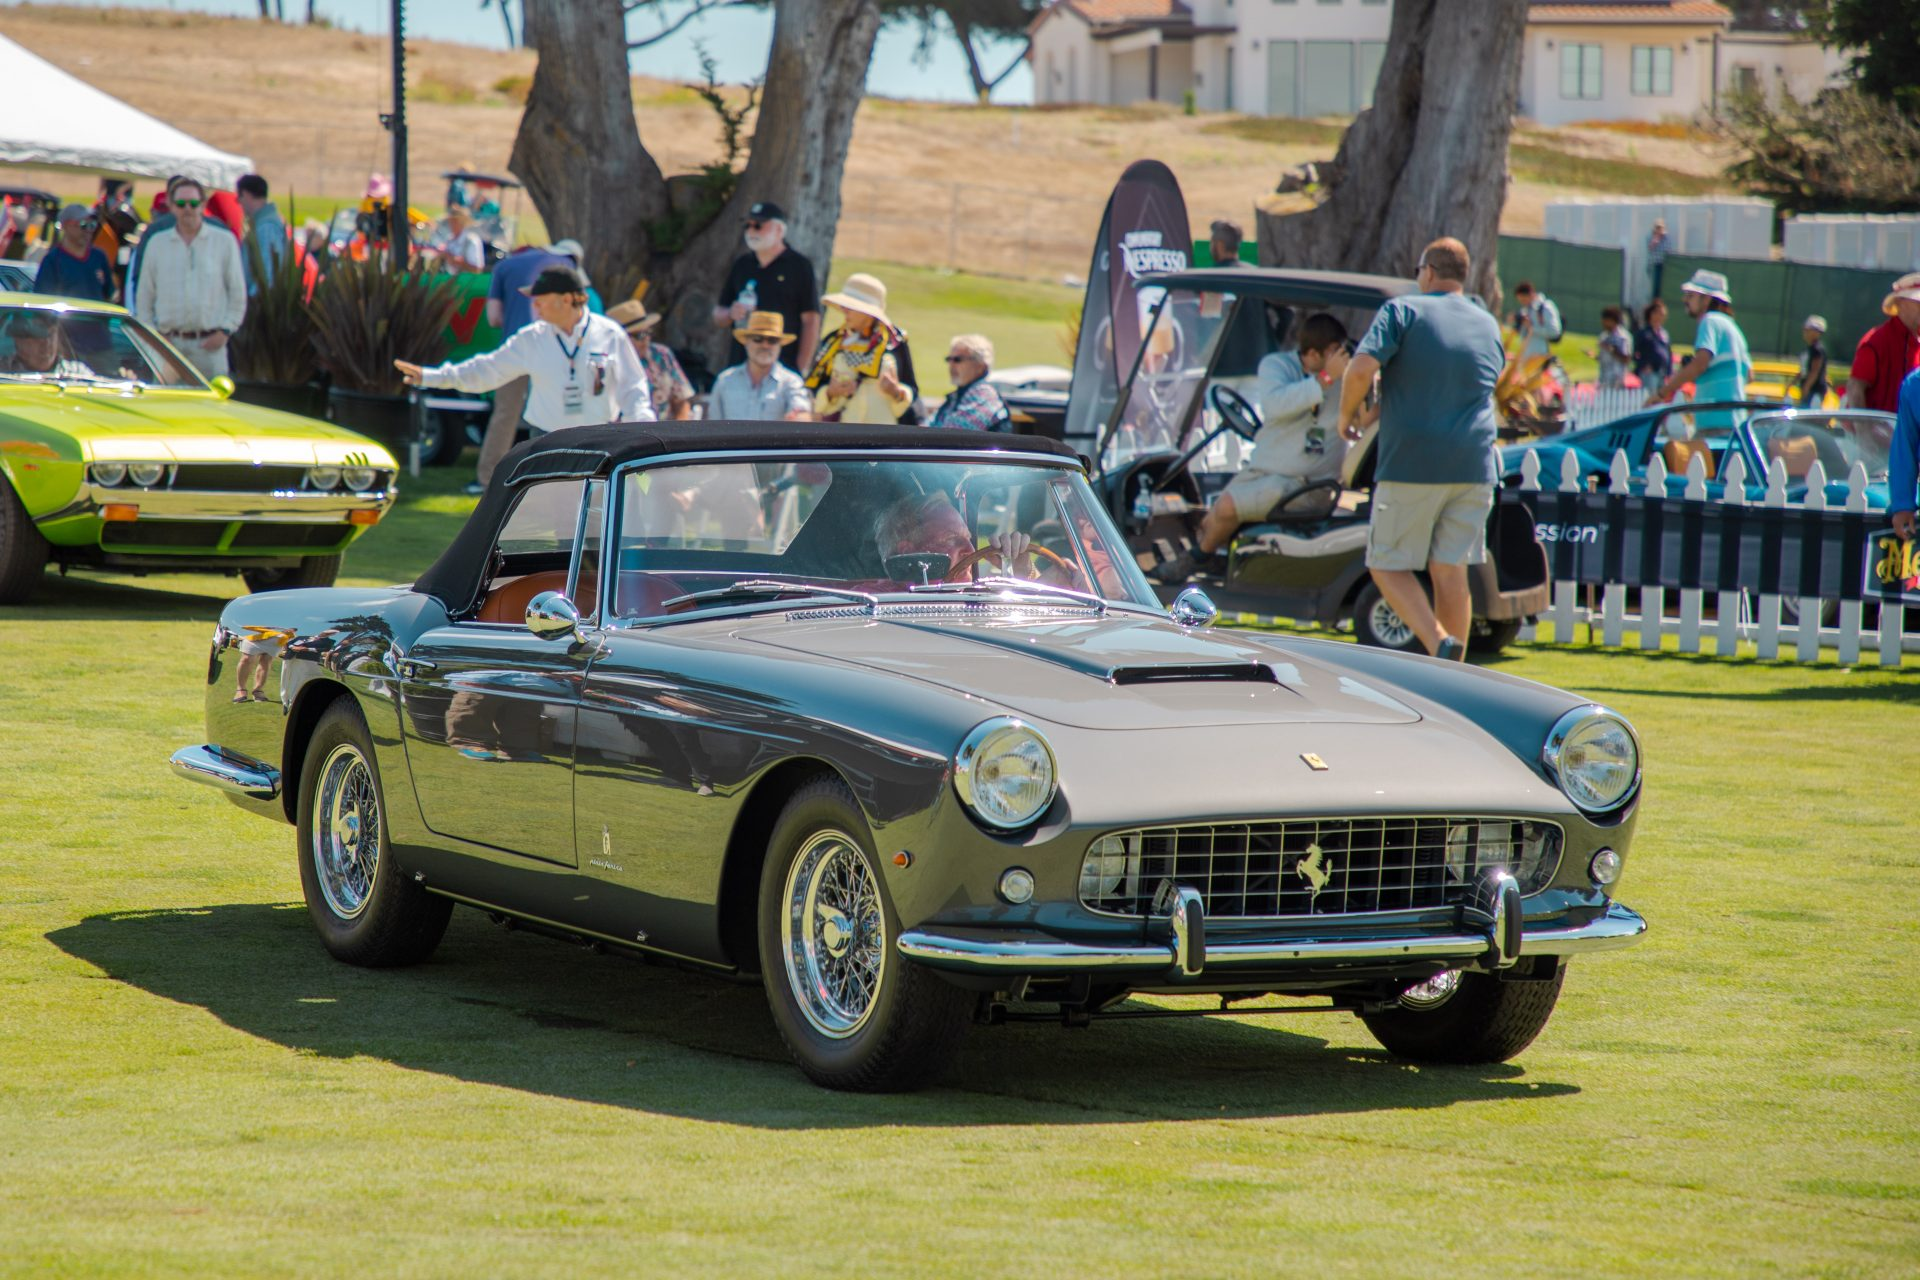 1st place Ferrari: 1960 Ferrari 250 GT Cabriolet owned by Ron Corradini from Newport Beach, CA